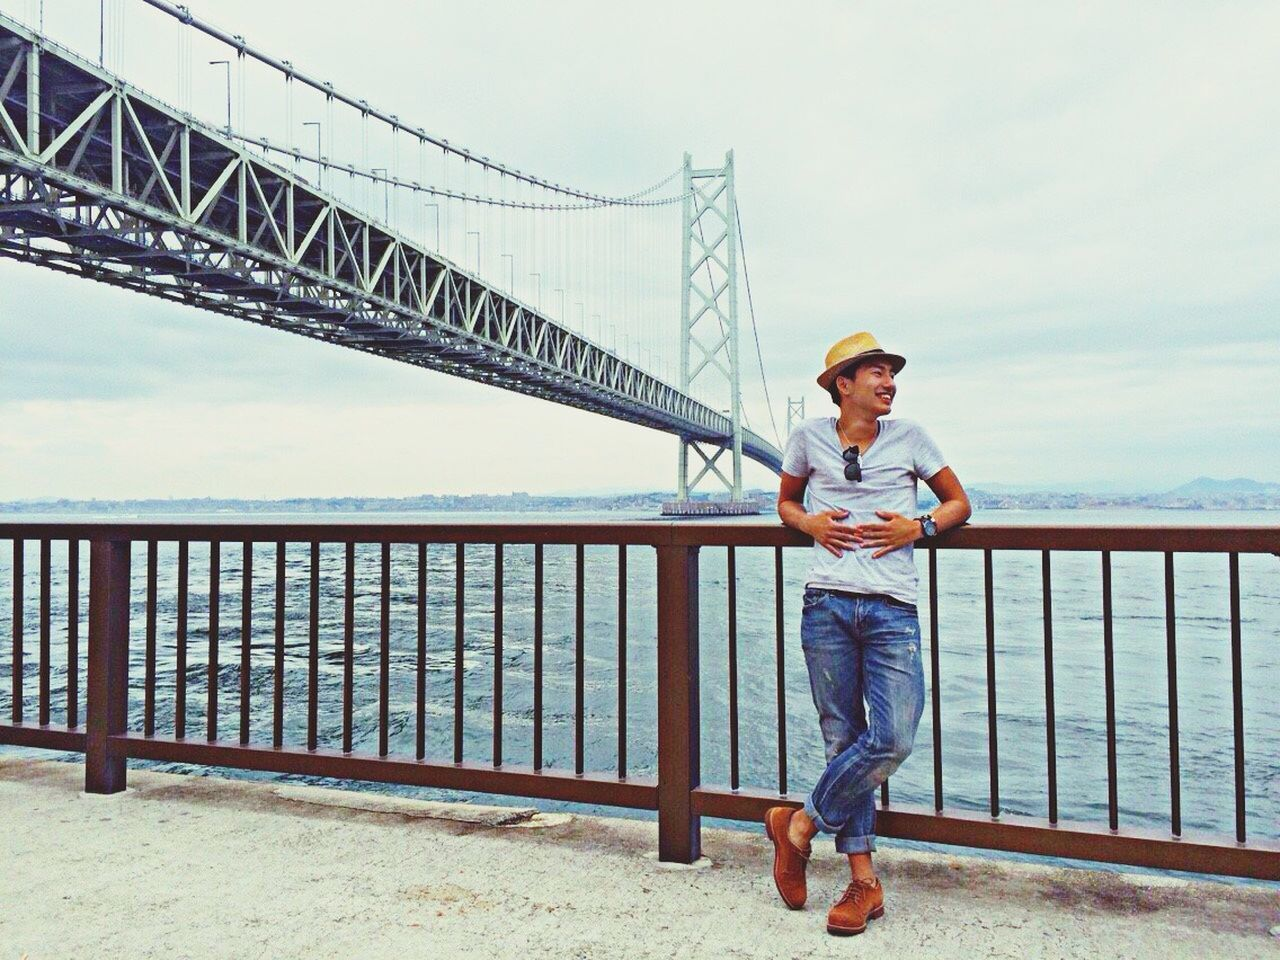 connection, railing, one person, bridge - man made structure, full length, smiling, standing, casual clothing, outdoors, day, architecture, suspension bridge, sky, built structure, real people, headwear, portrait, water, young adult, adult, people